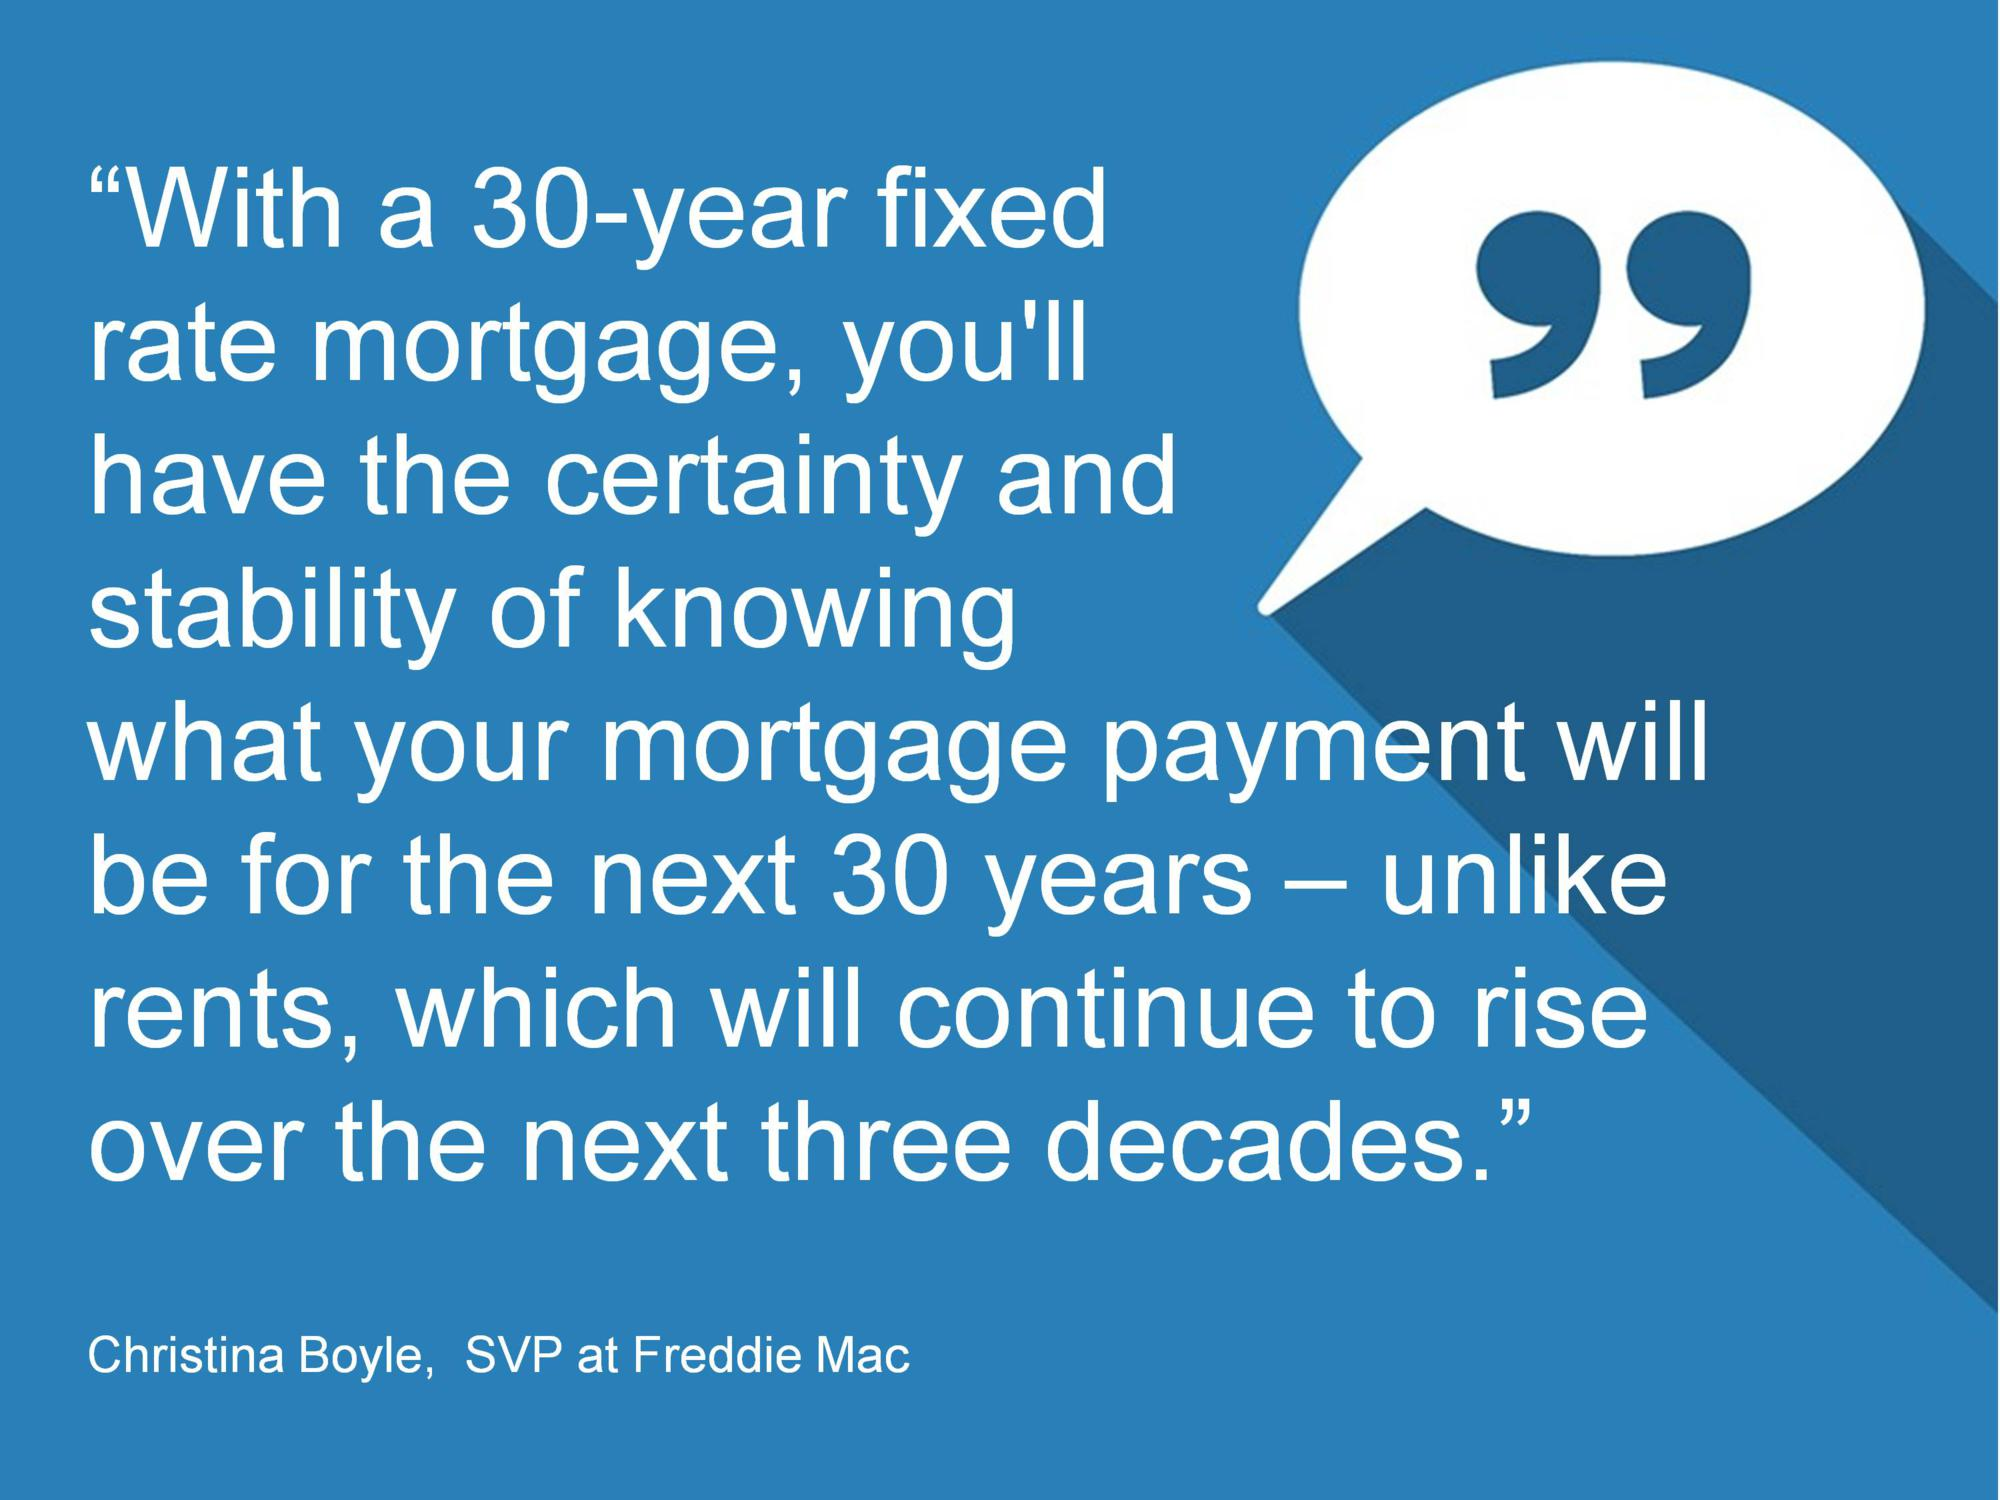 quote from freddie mac official saying mortgages are more predictable than rental rates over 30 years